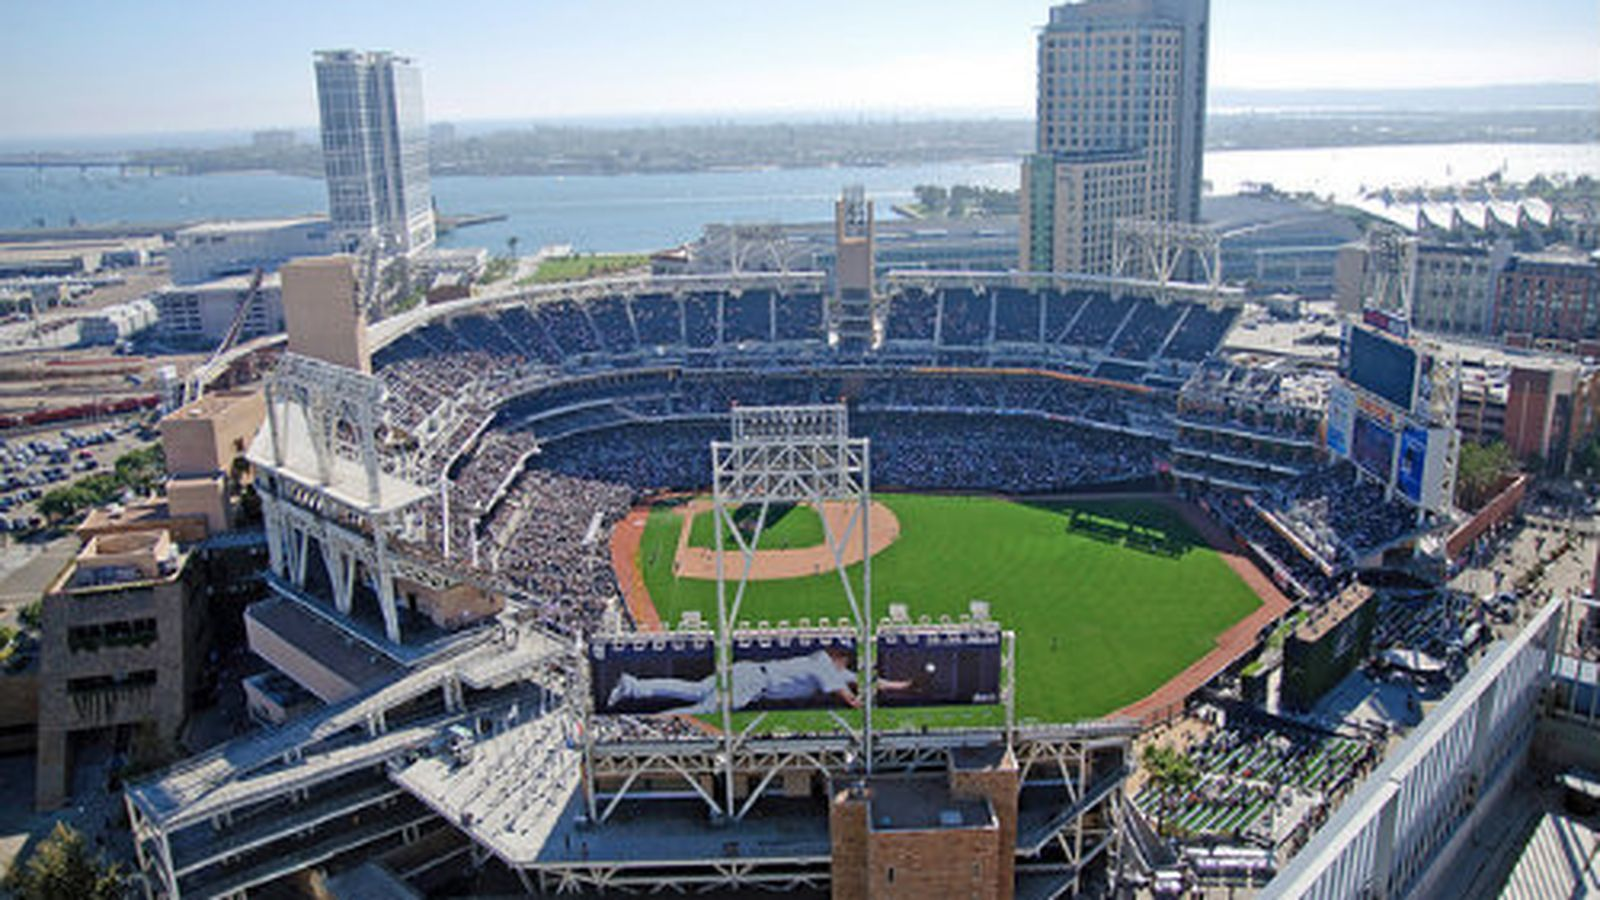 What To Eat At San Diego S Petco Park 2015 Edition Updated Baseball Park Petco Park Baseball Stadium